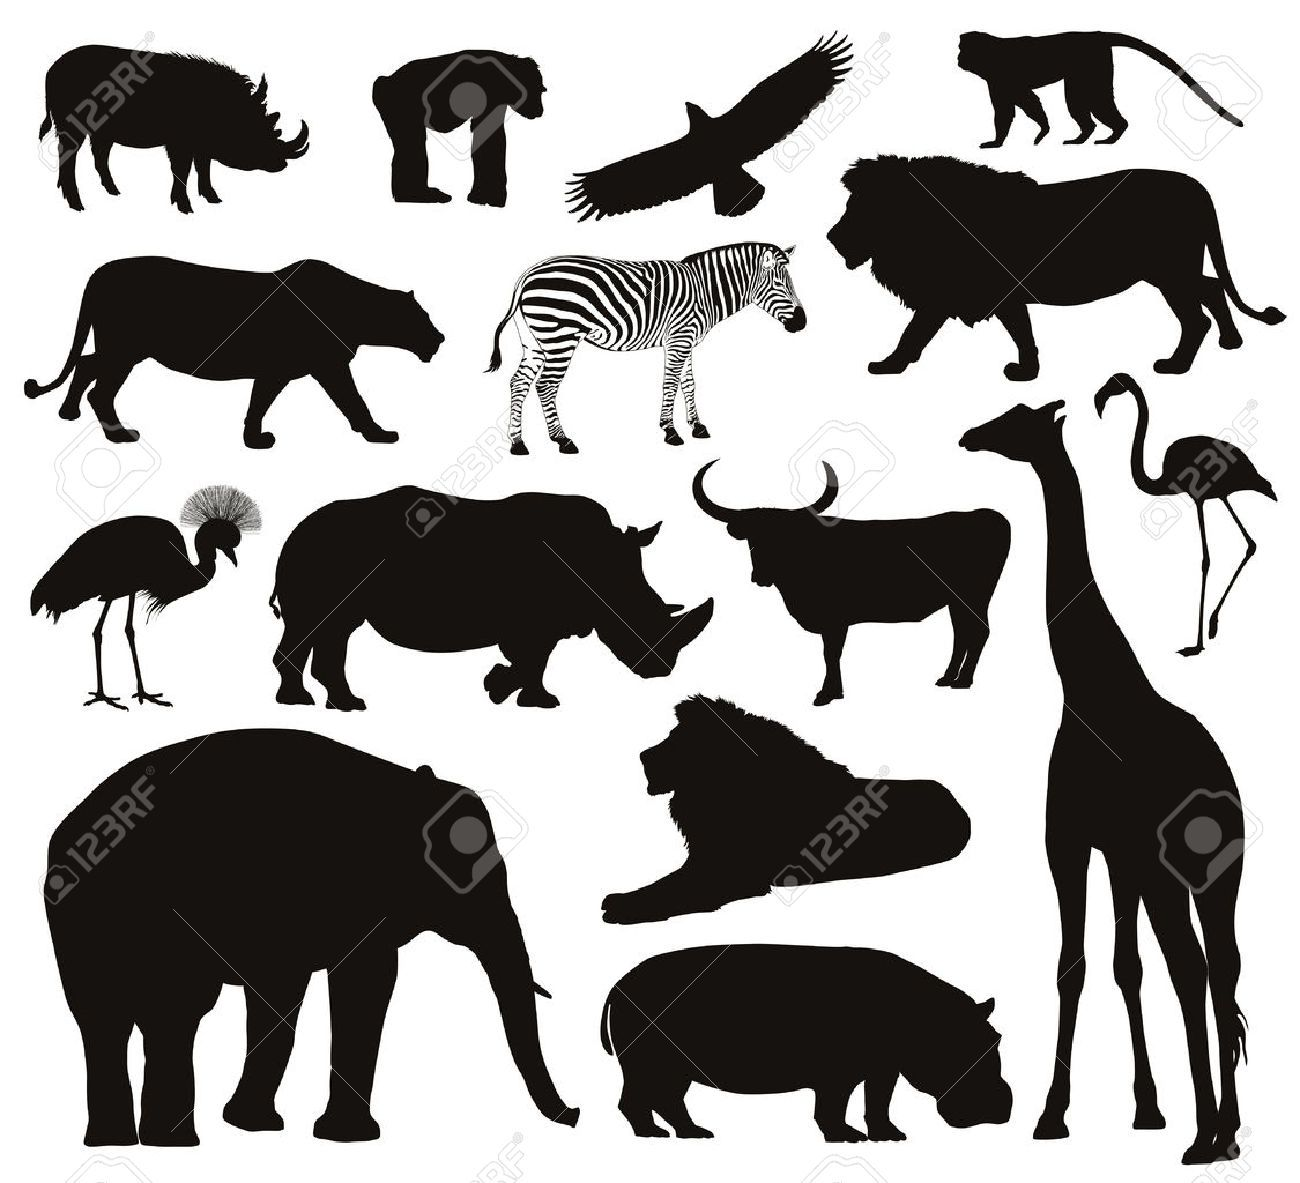 Stock Photo Animaux africains, Silhouette animaux et Animaux